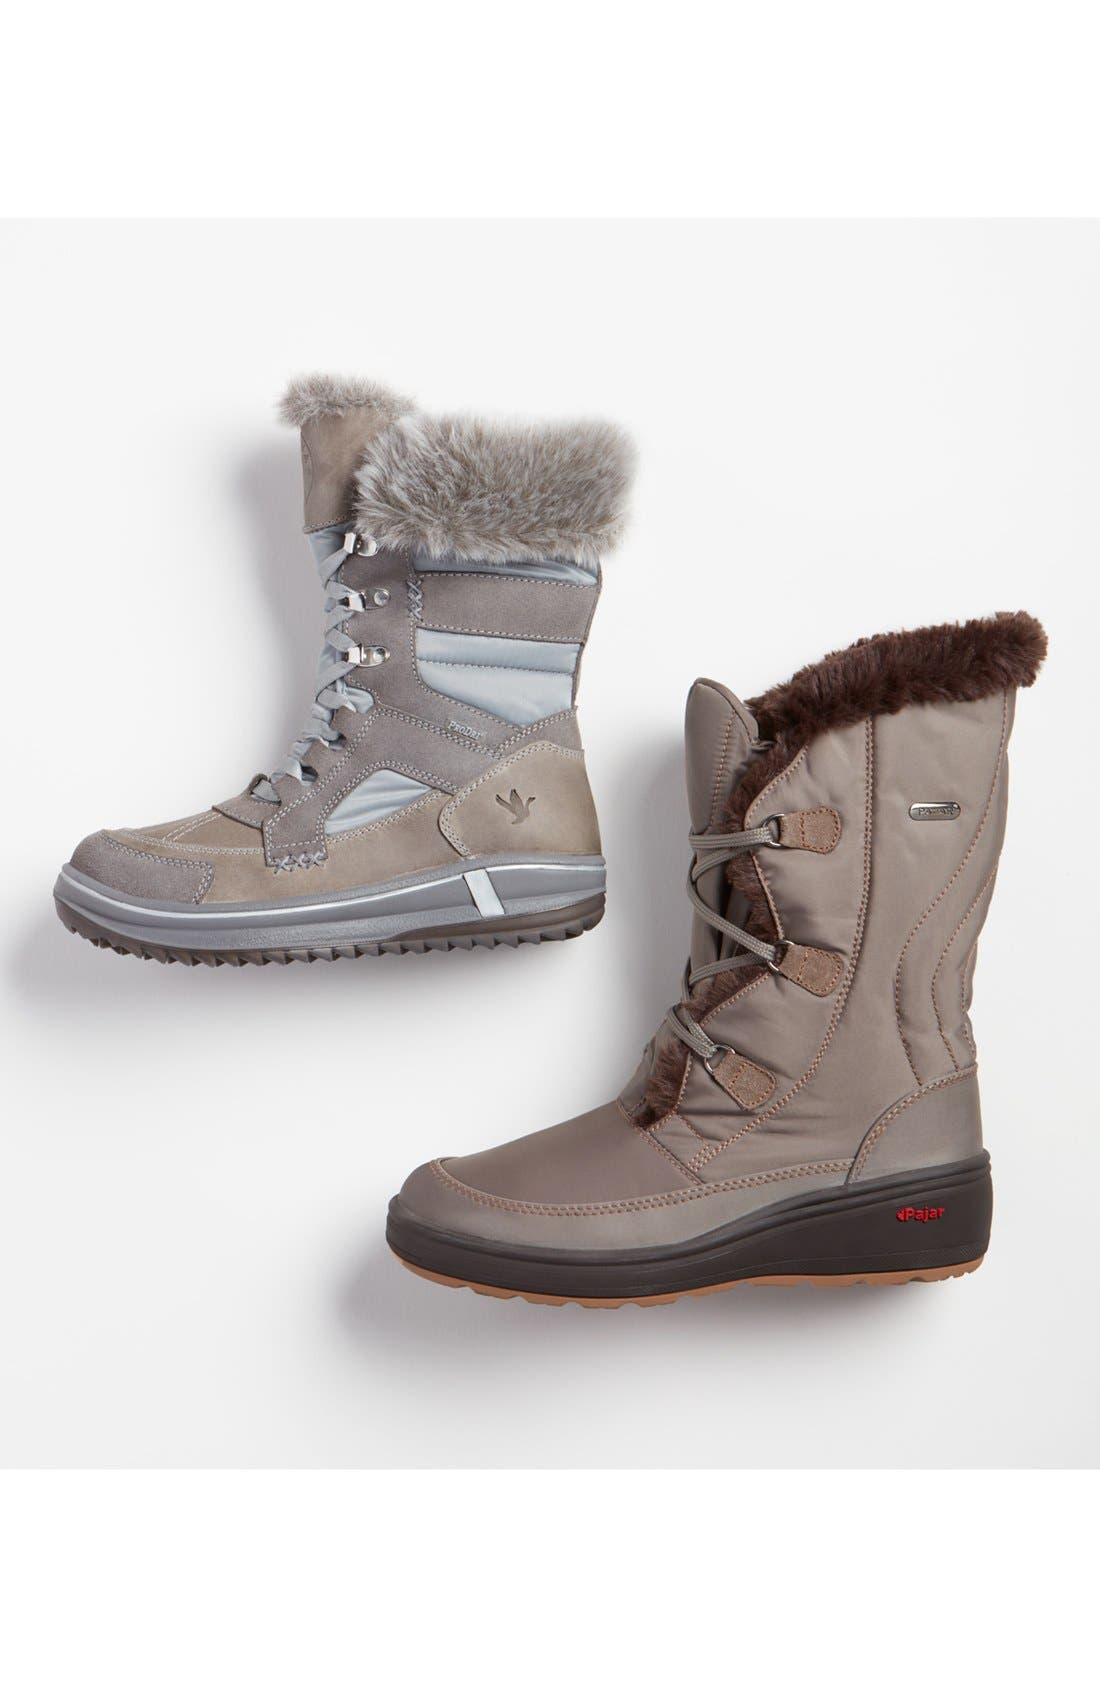 'Marta' Water Resistant Insulated Winter Boot,                             Alternate thumbnail 5, color,                             236